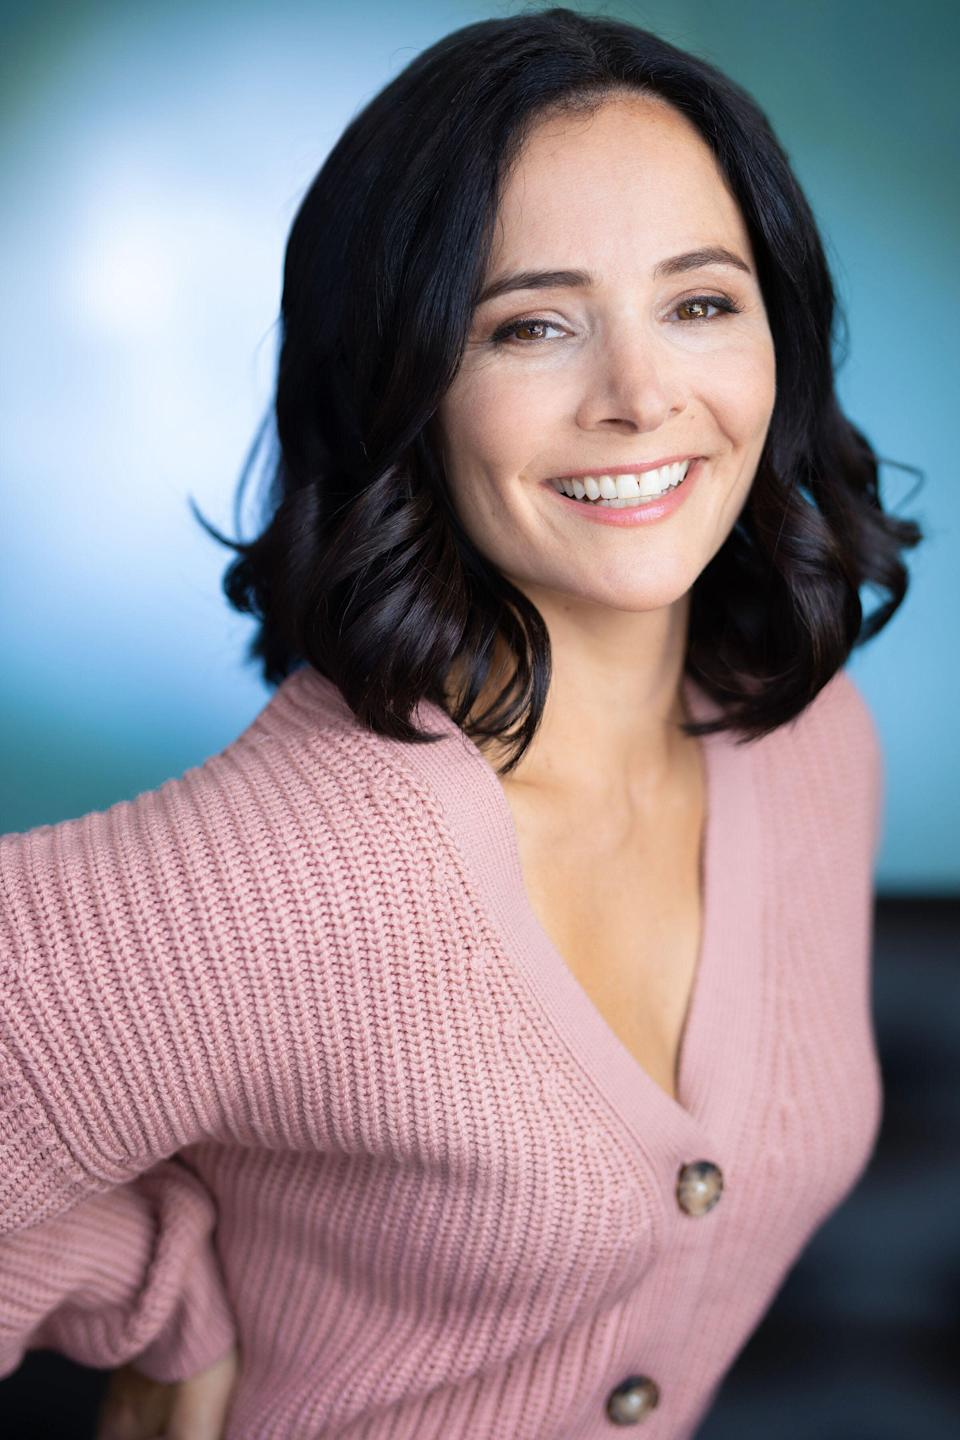 Vancouver actor Sarah Edmondson is glad she opened up about her experience in the NXIVM cult. (Photo: J Benson Pictures / Courtesy of Sarah Edmondson)